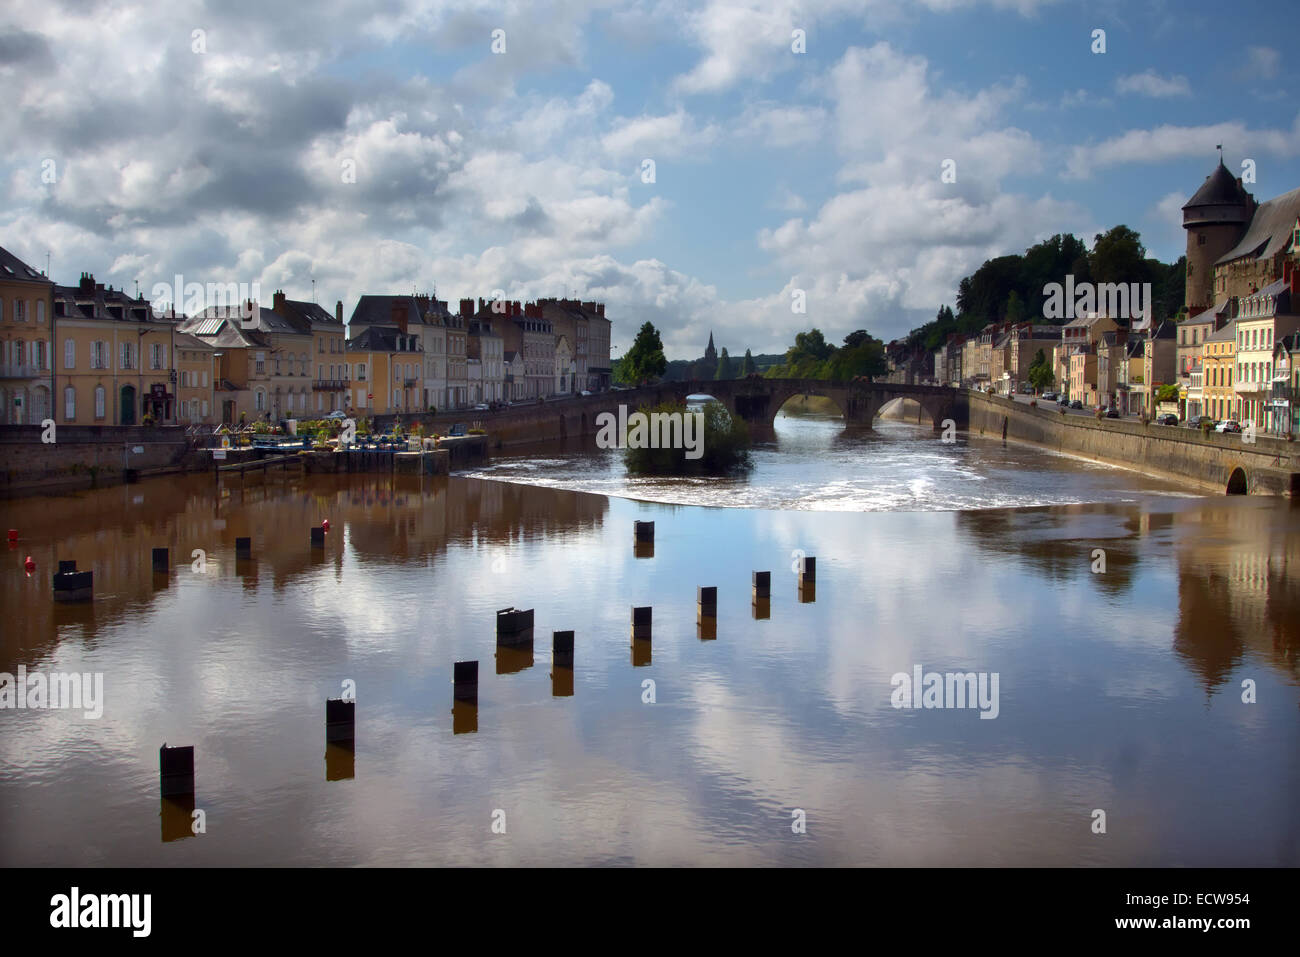 Chateau Gontier, Mayenne, France Stock Photo